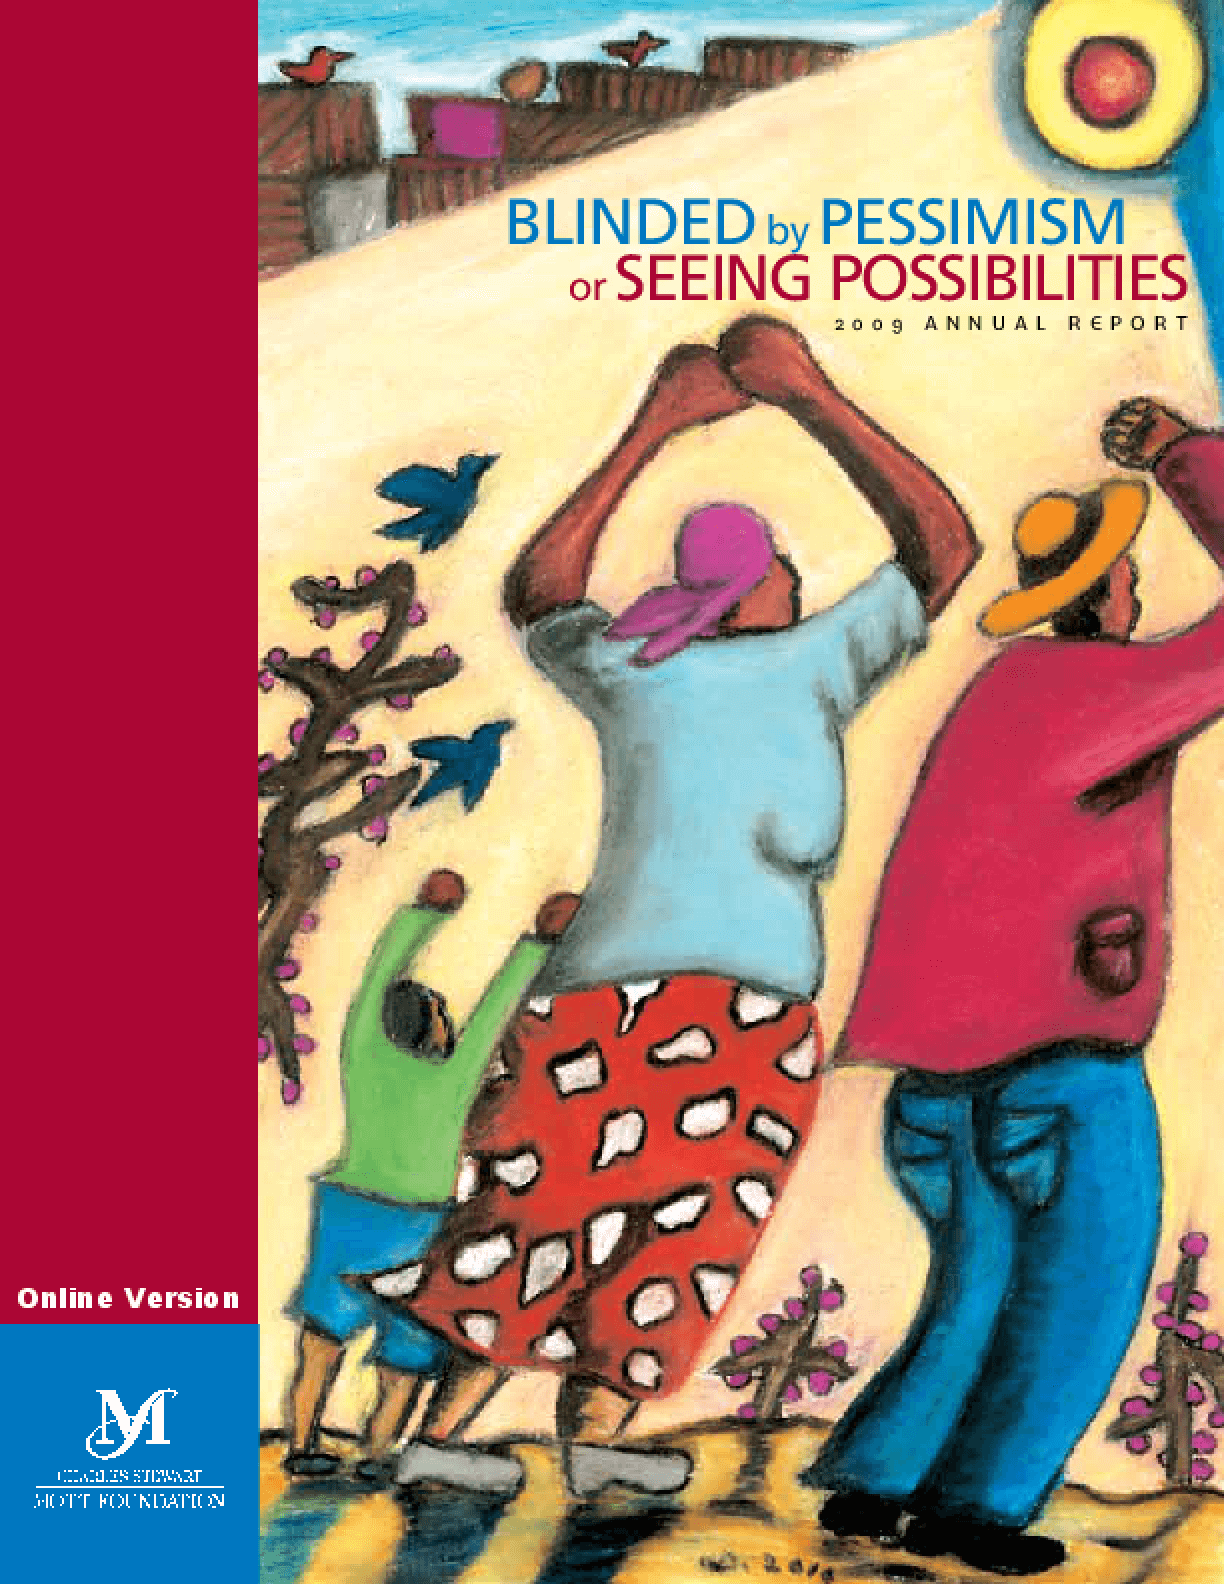 Charles Stewart Mott Foundation - 2009 Annual Report: Blinded by Pessimism or Seeing Possibilities